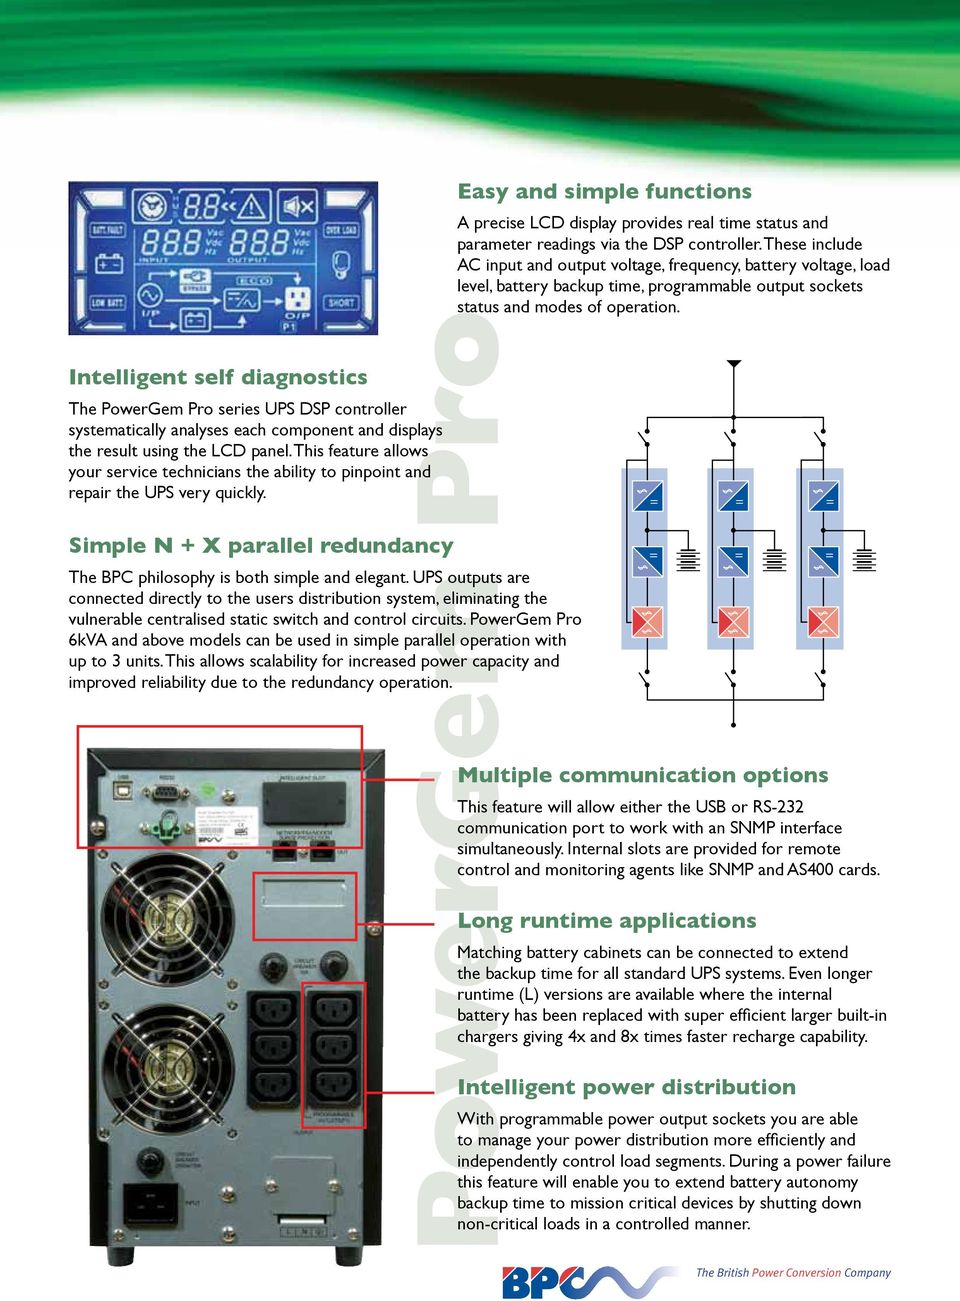 Powergem Pro Uninterruptible Power Supply Pdf Phase Ups Pure Sine Wave Schematic Diagram Datasheet Circuit Outputs Are Connected Directly To The Users Distribution System Eliminating Vulnerable Centralised Static